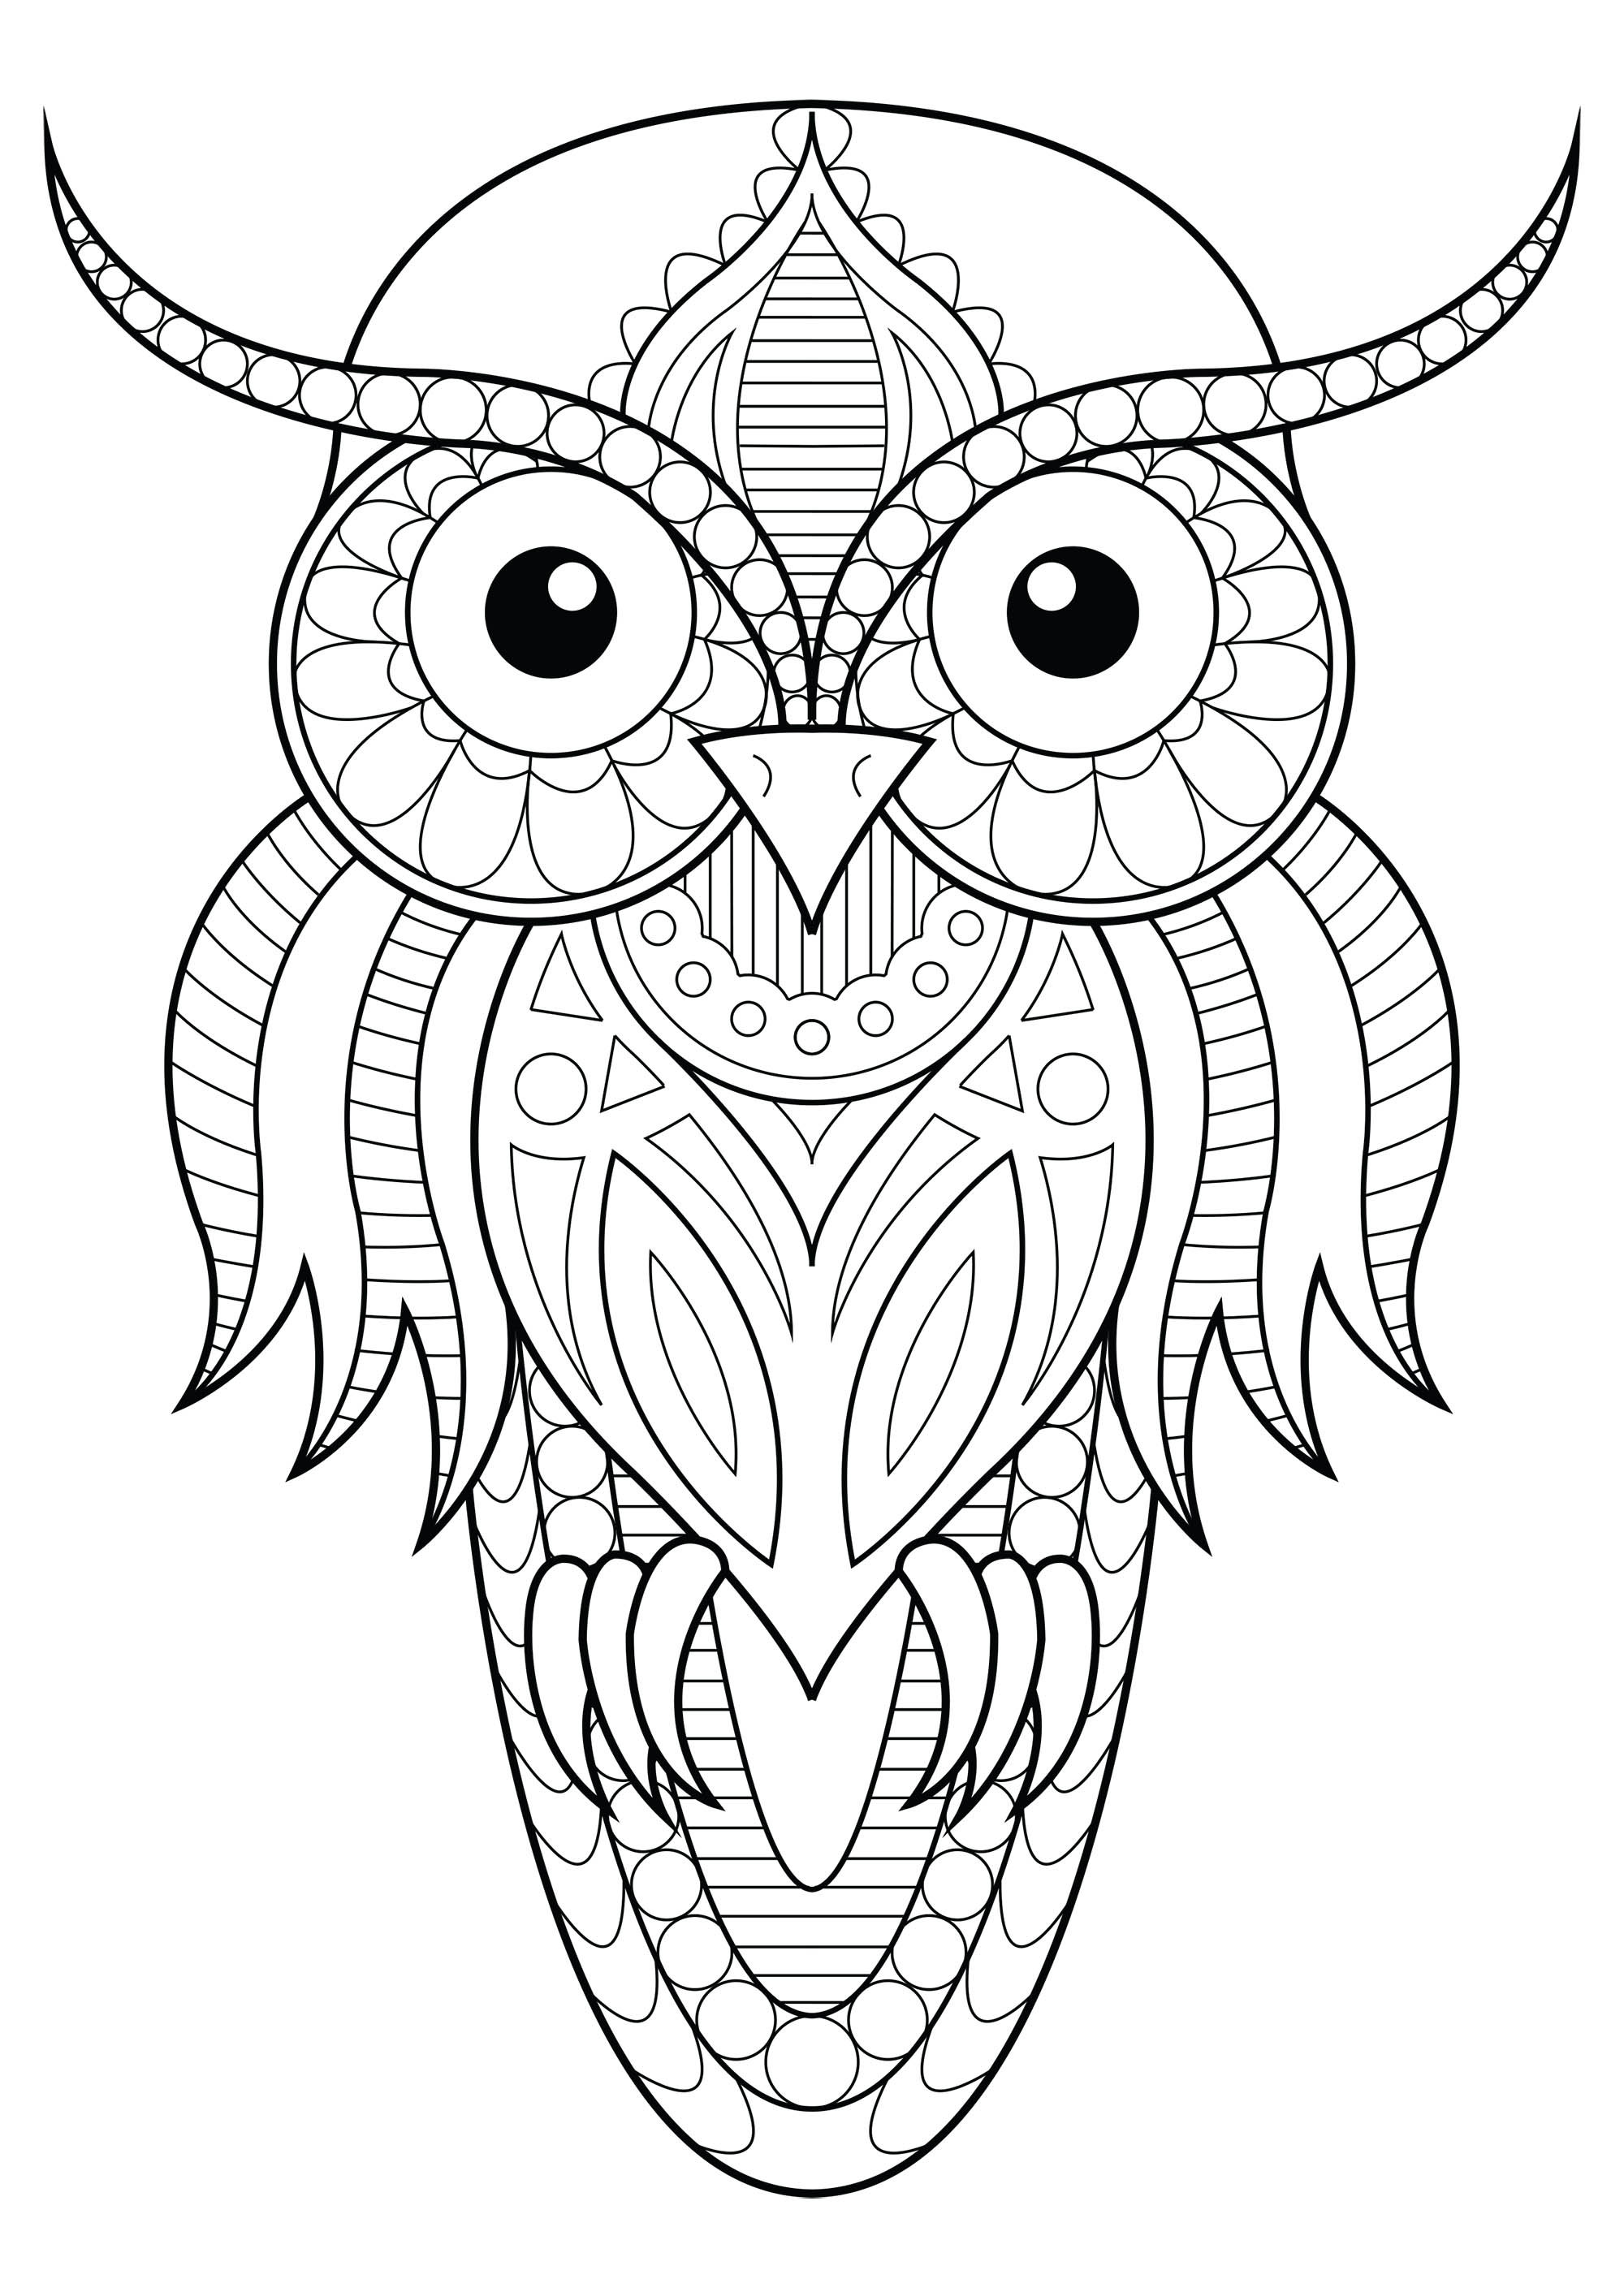 Owl Simple Patterns 1 Owls Adult Coloring Pages